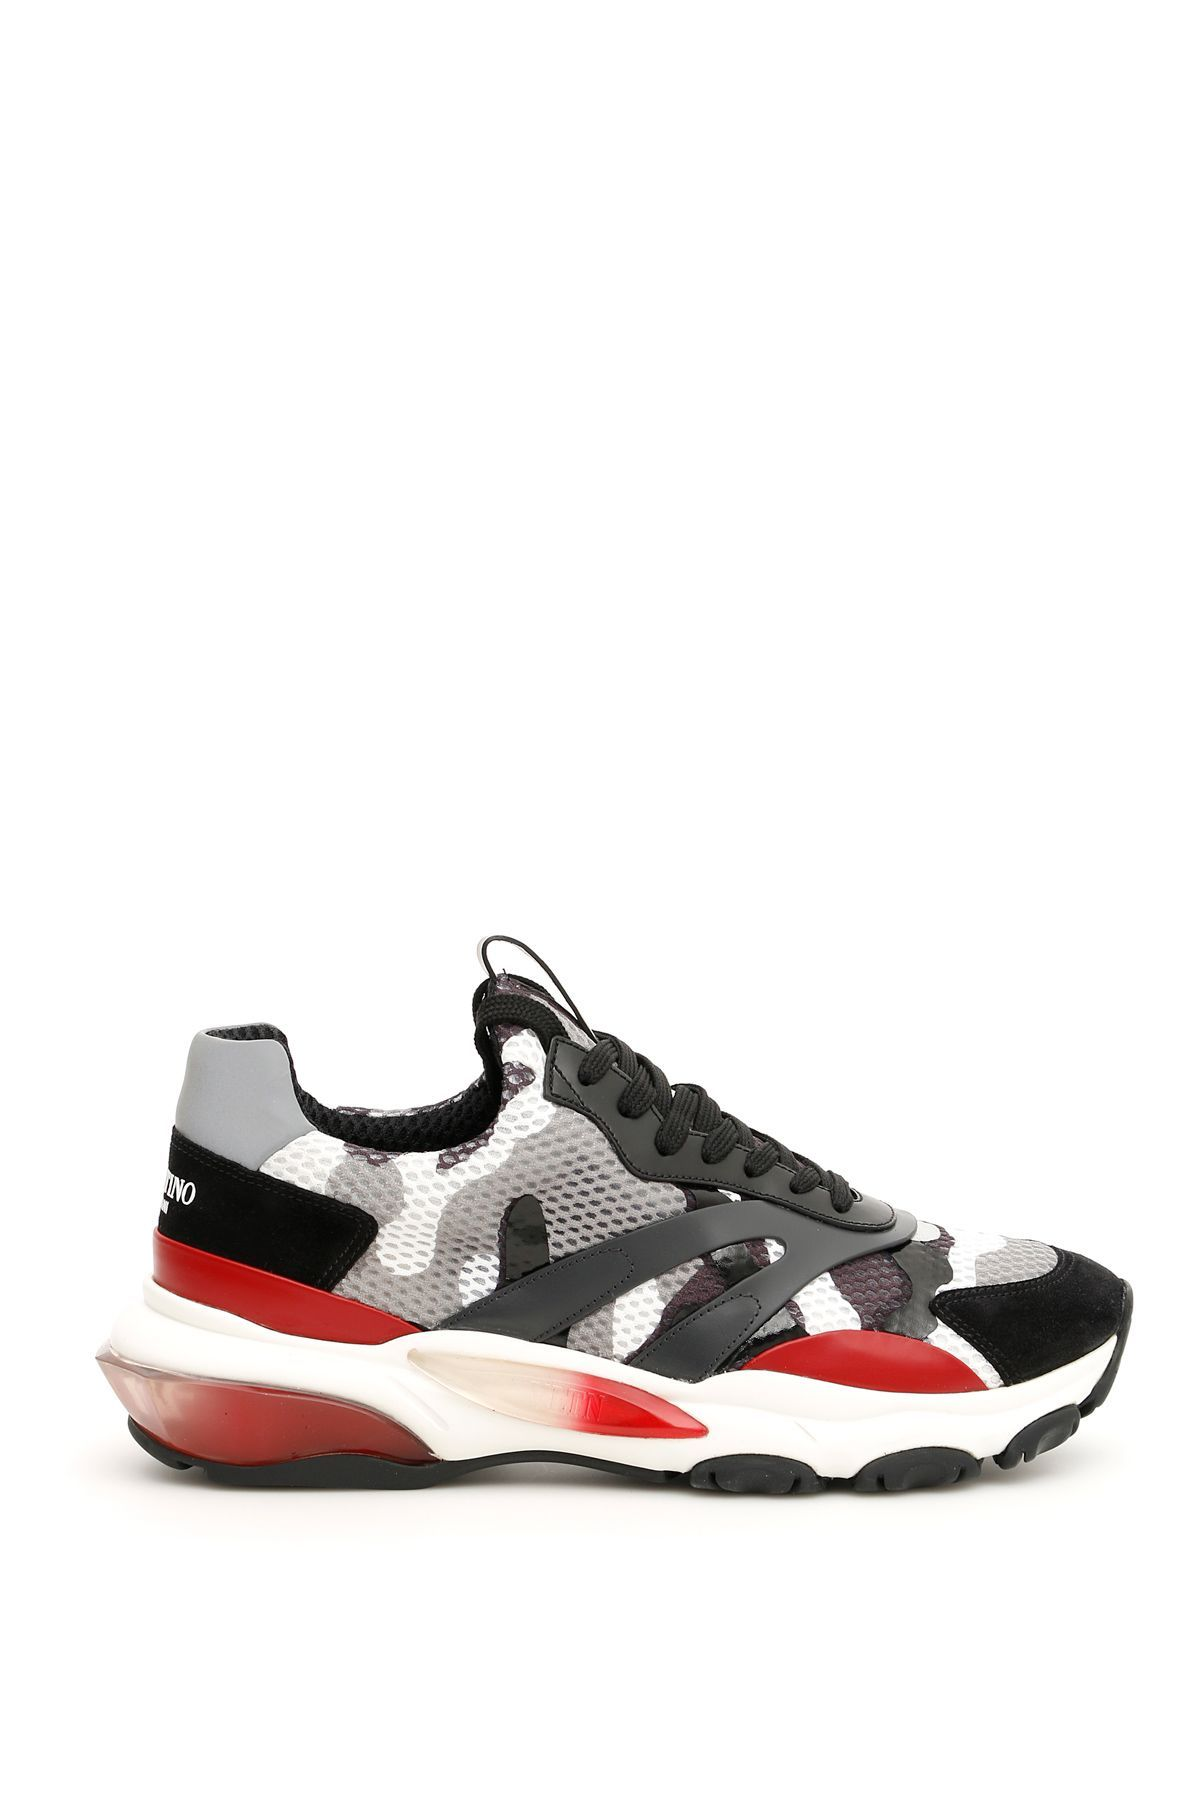 a0f62606a VALENTINO CAMOUFLAGE BOUNCE SNEAKERS.  valentino  shoes